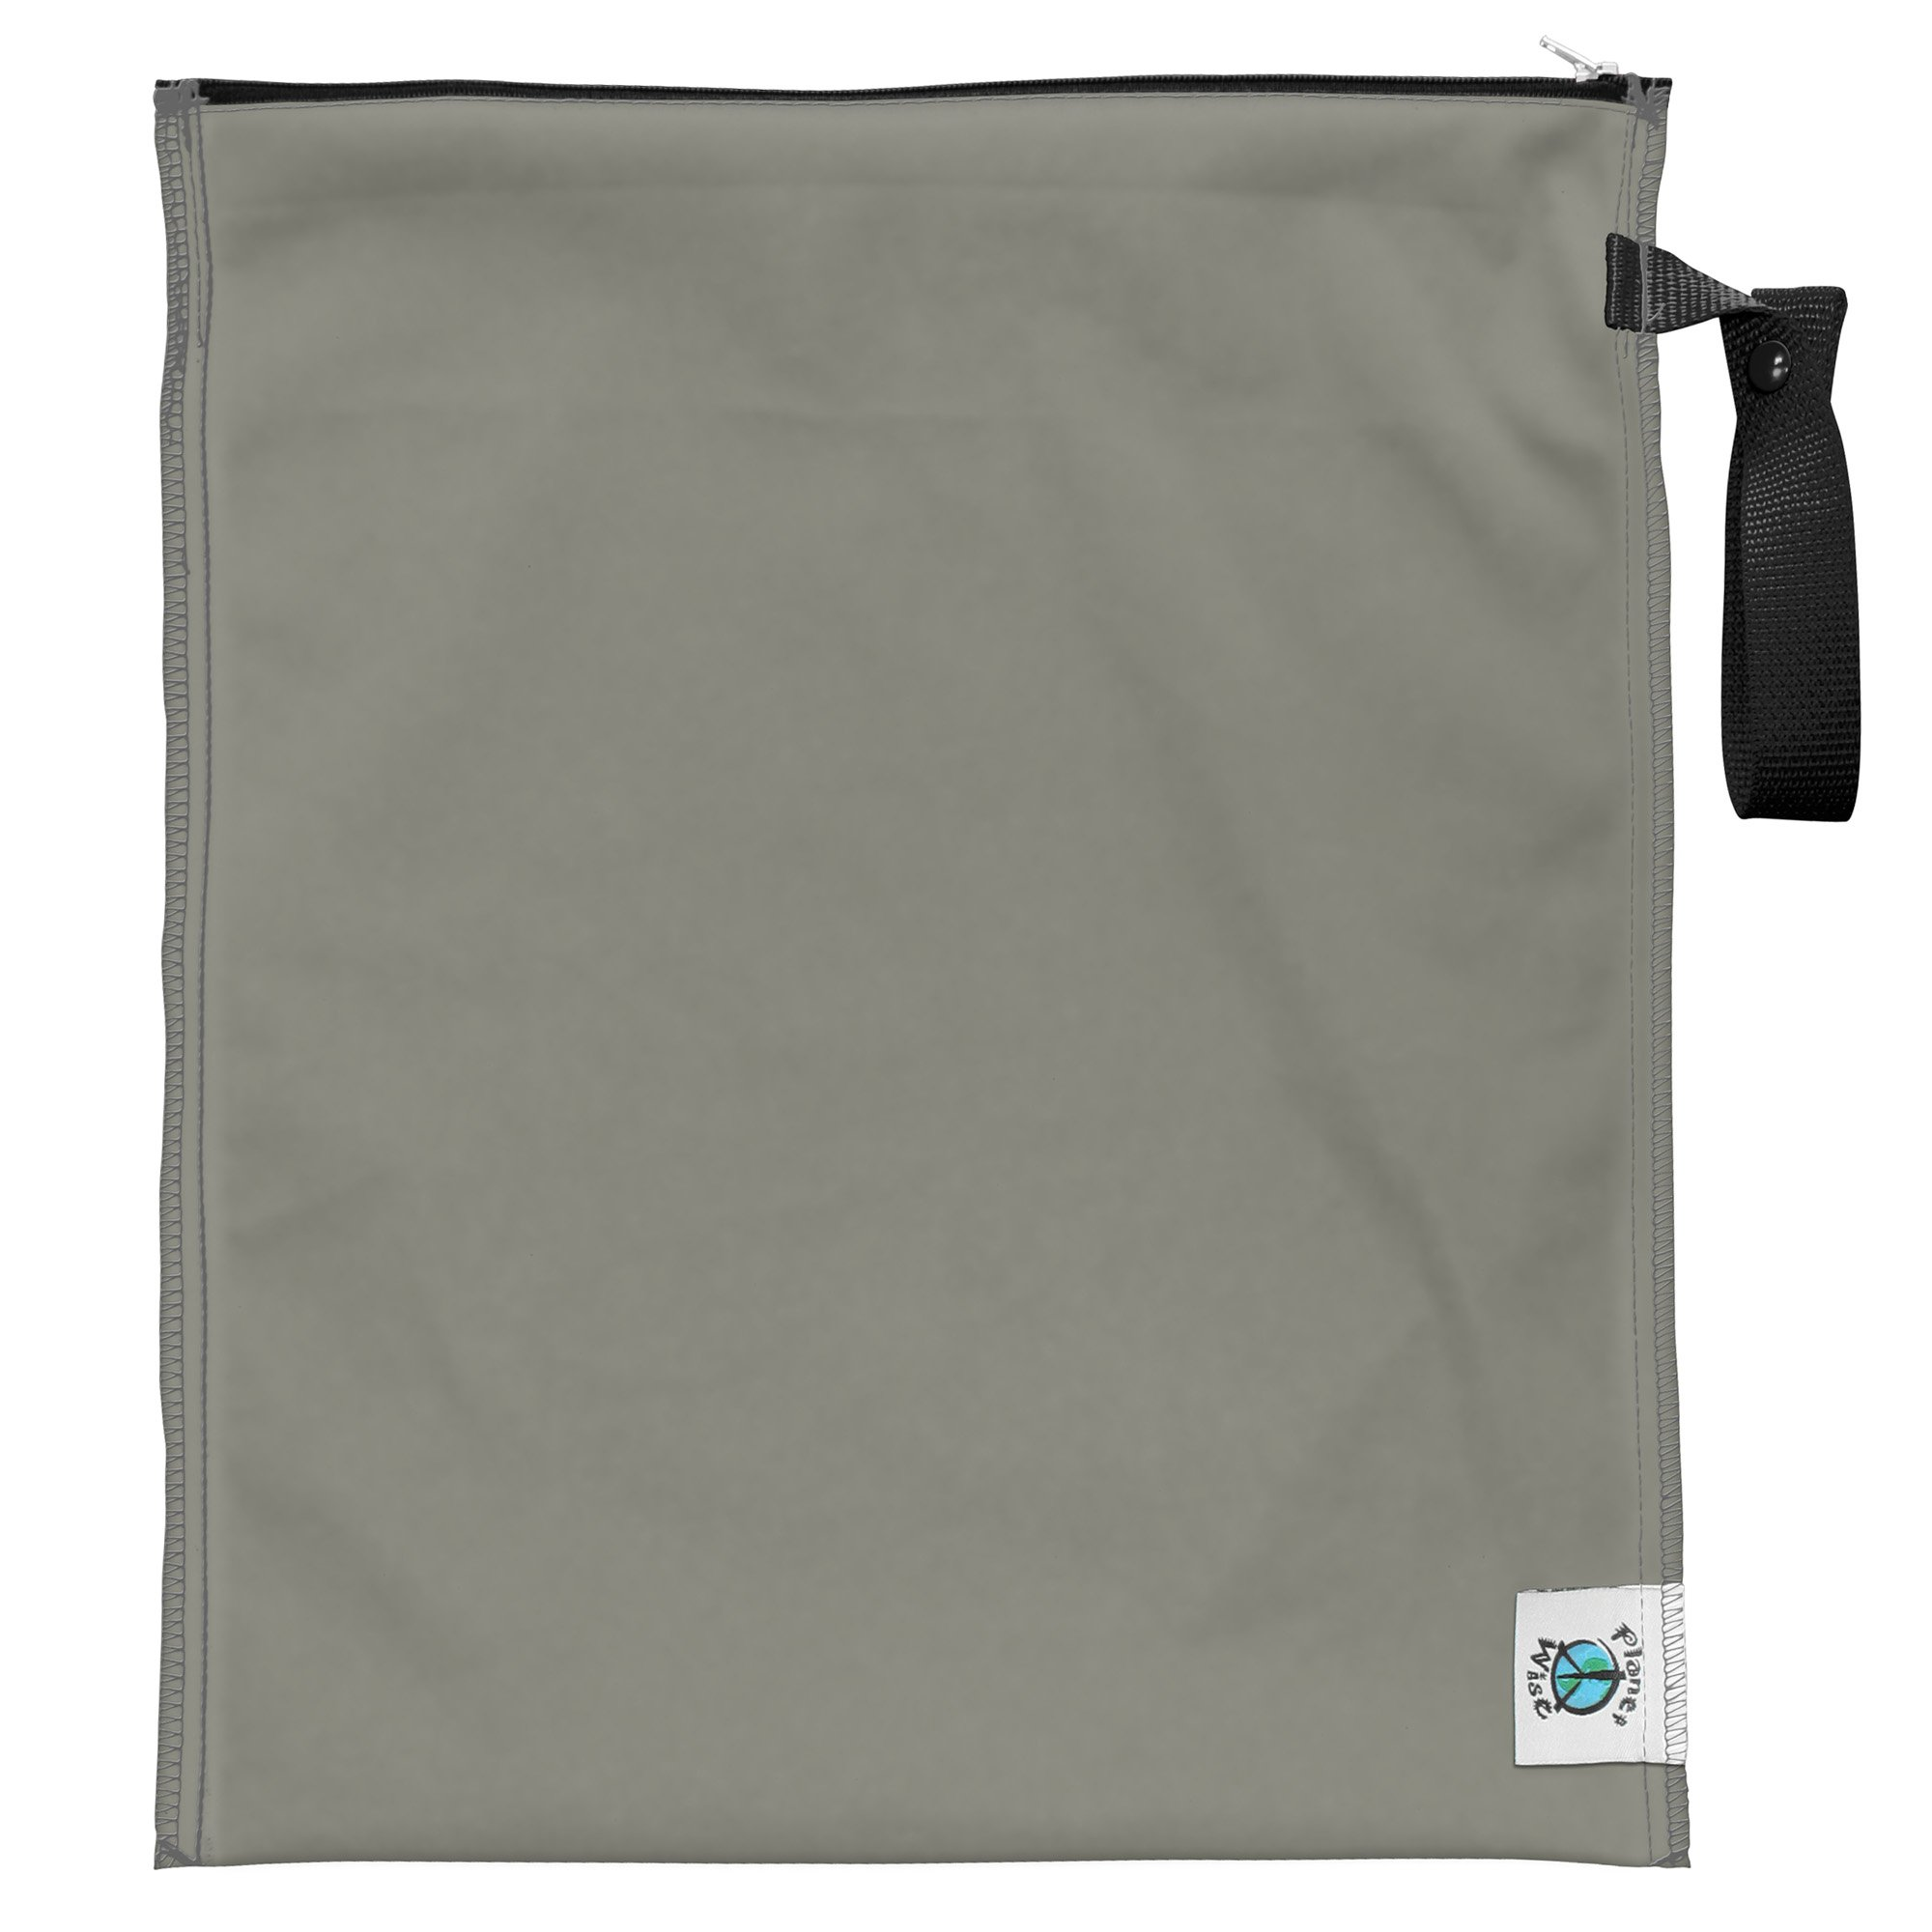 Planet Wise Medium Lite Wet Bag, Slate by Planet Wise